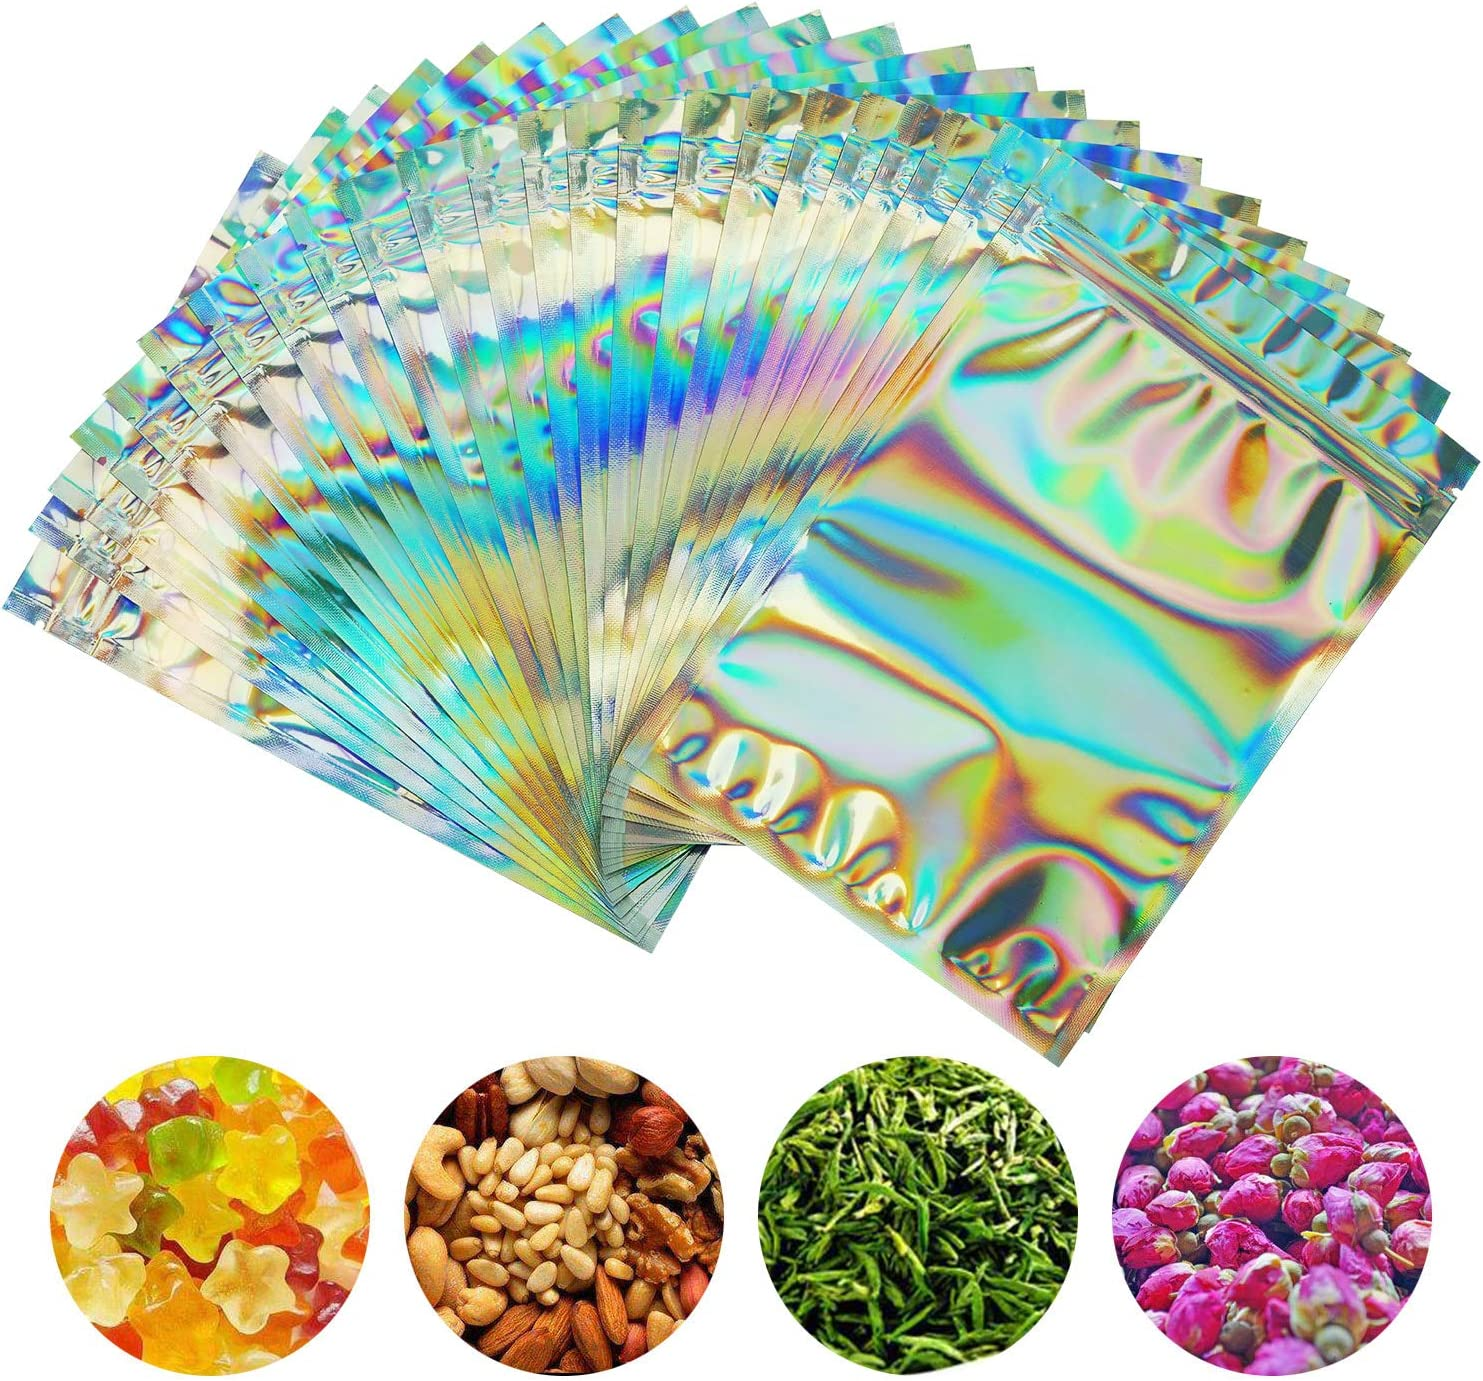 SMONCO 100 Pieces Smell Proof Bags - 5x7 Inches Resealable Mylar Bags Clear Zip Lock Food Candy Storage Bags Holographic Rainbow Color